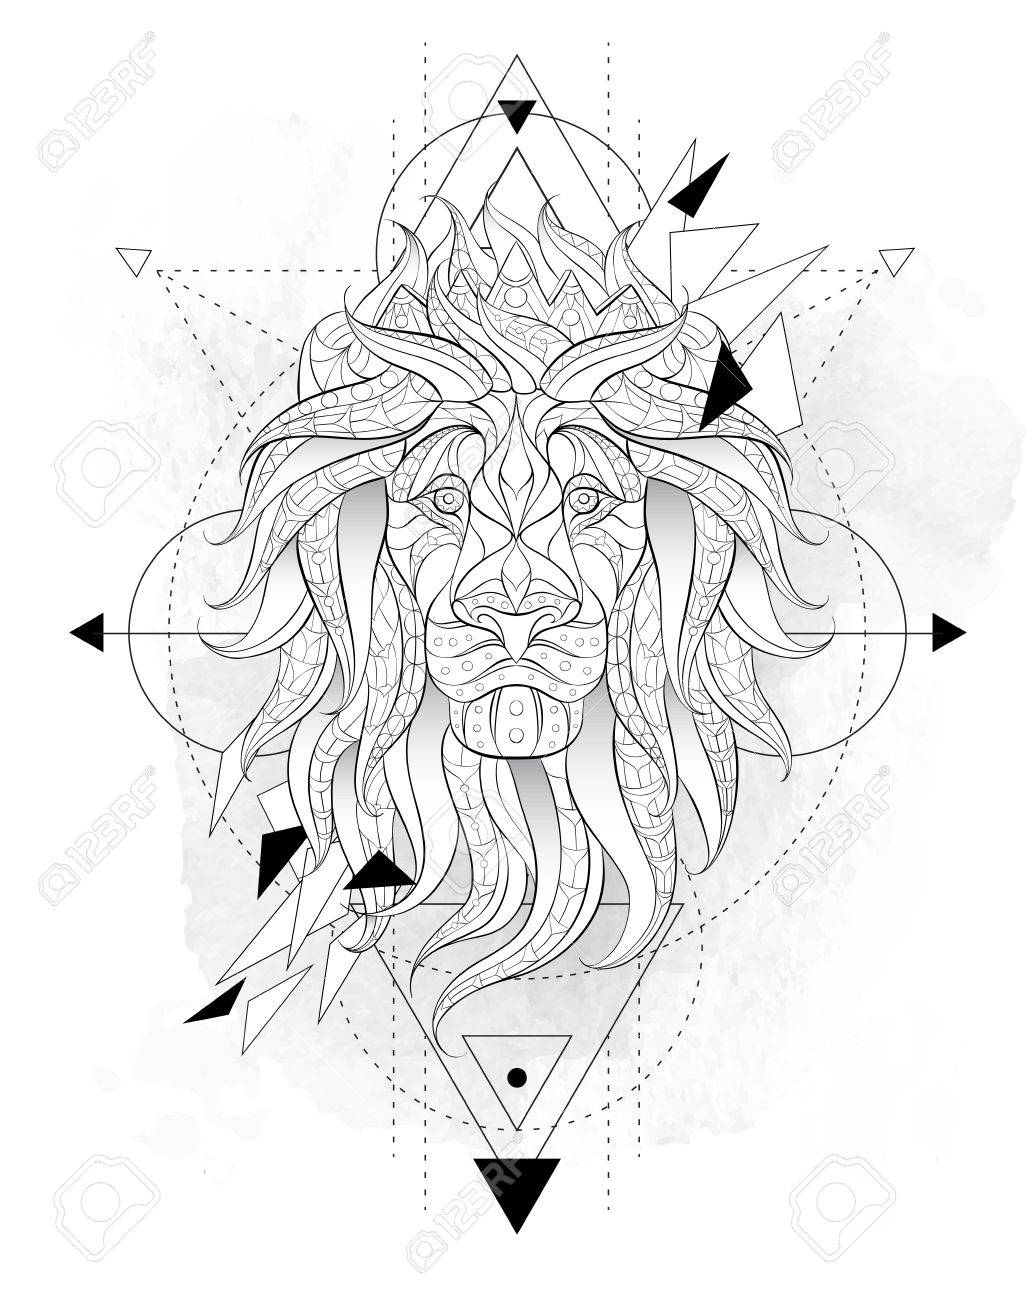 Patterned Head Of The Lion With Geometry On The Grunge Background